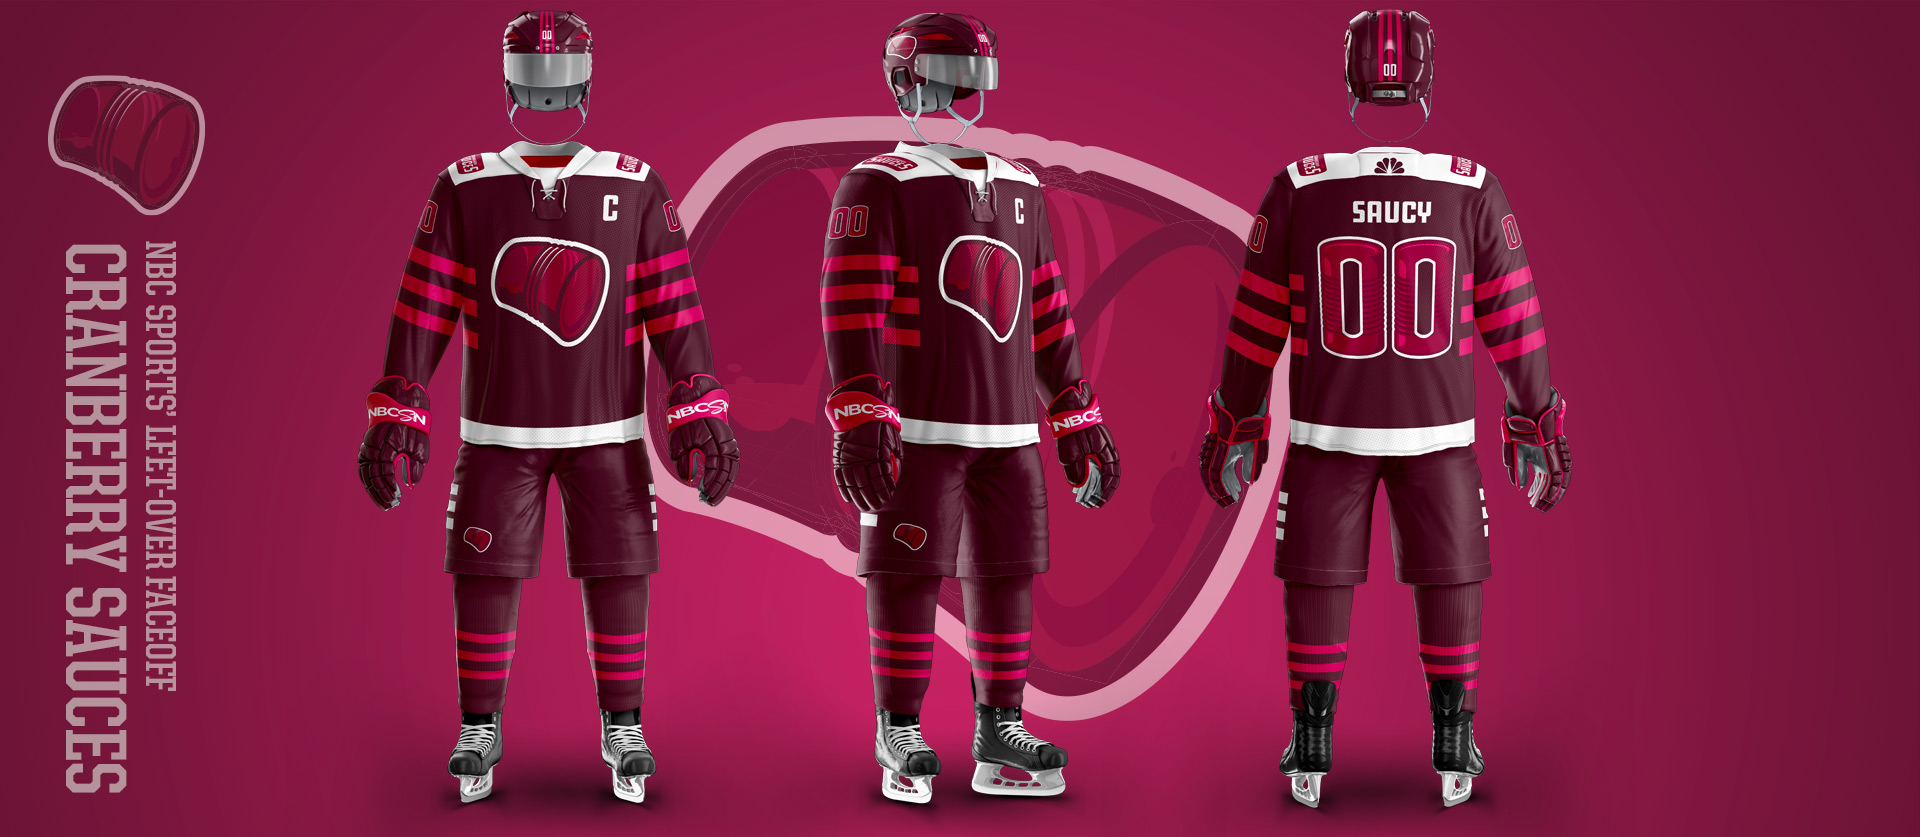 Cranberry Sauces - Football Uniform Design for NBC Sports Thanksgiving Second Feast Face-off